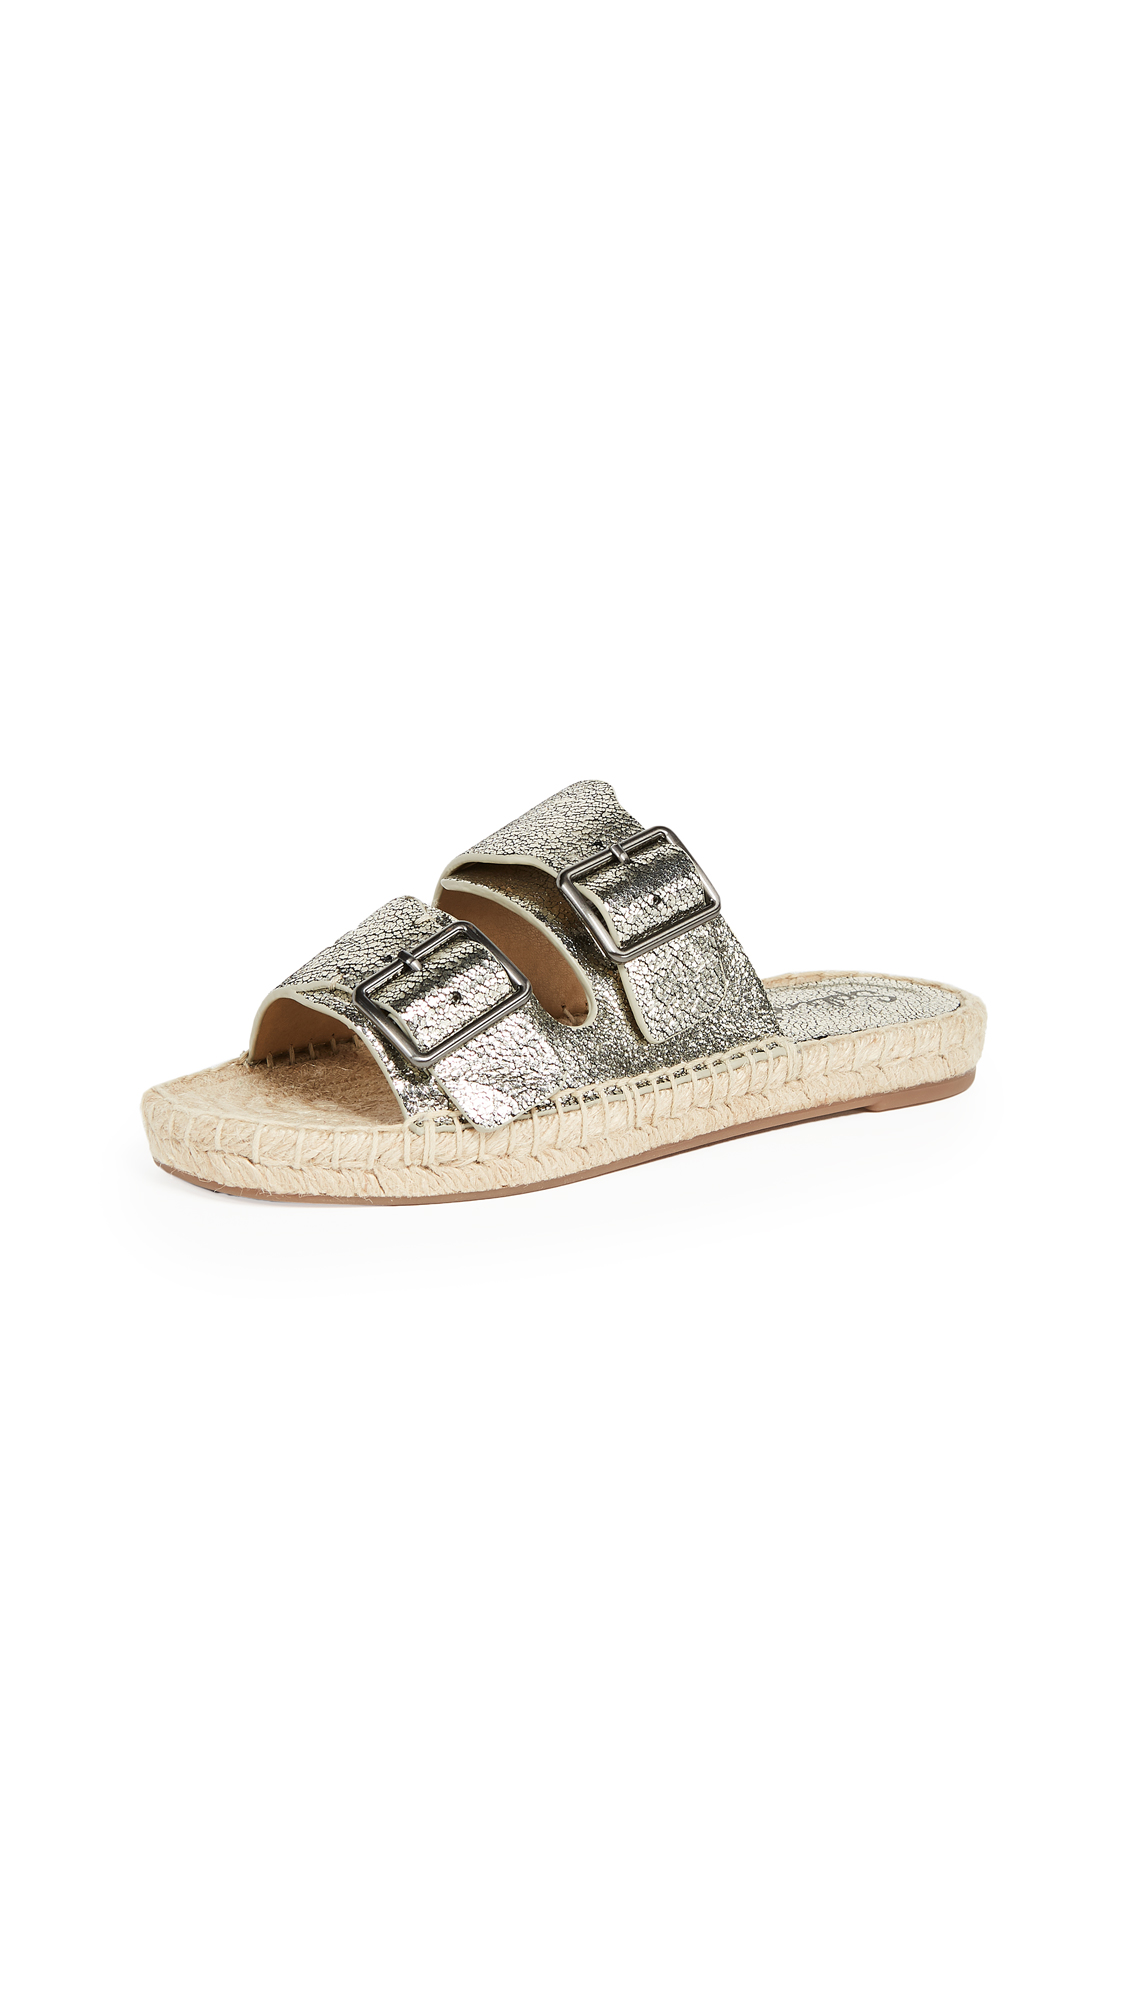 Splendid Blake Double Strap Slides - Nickel